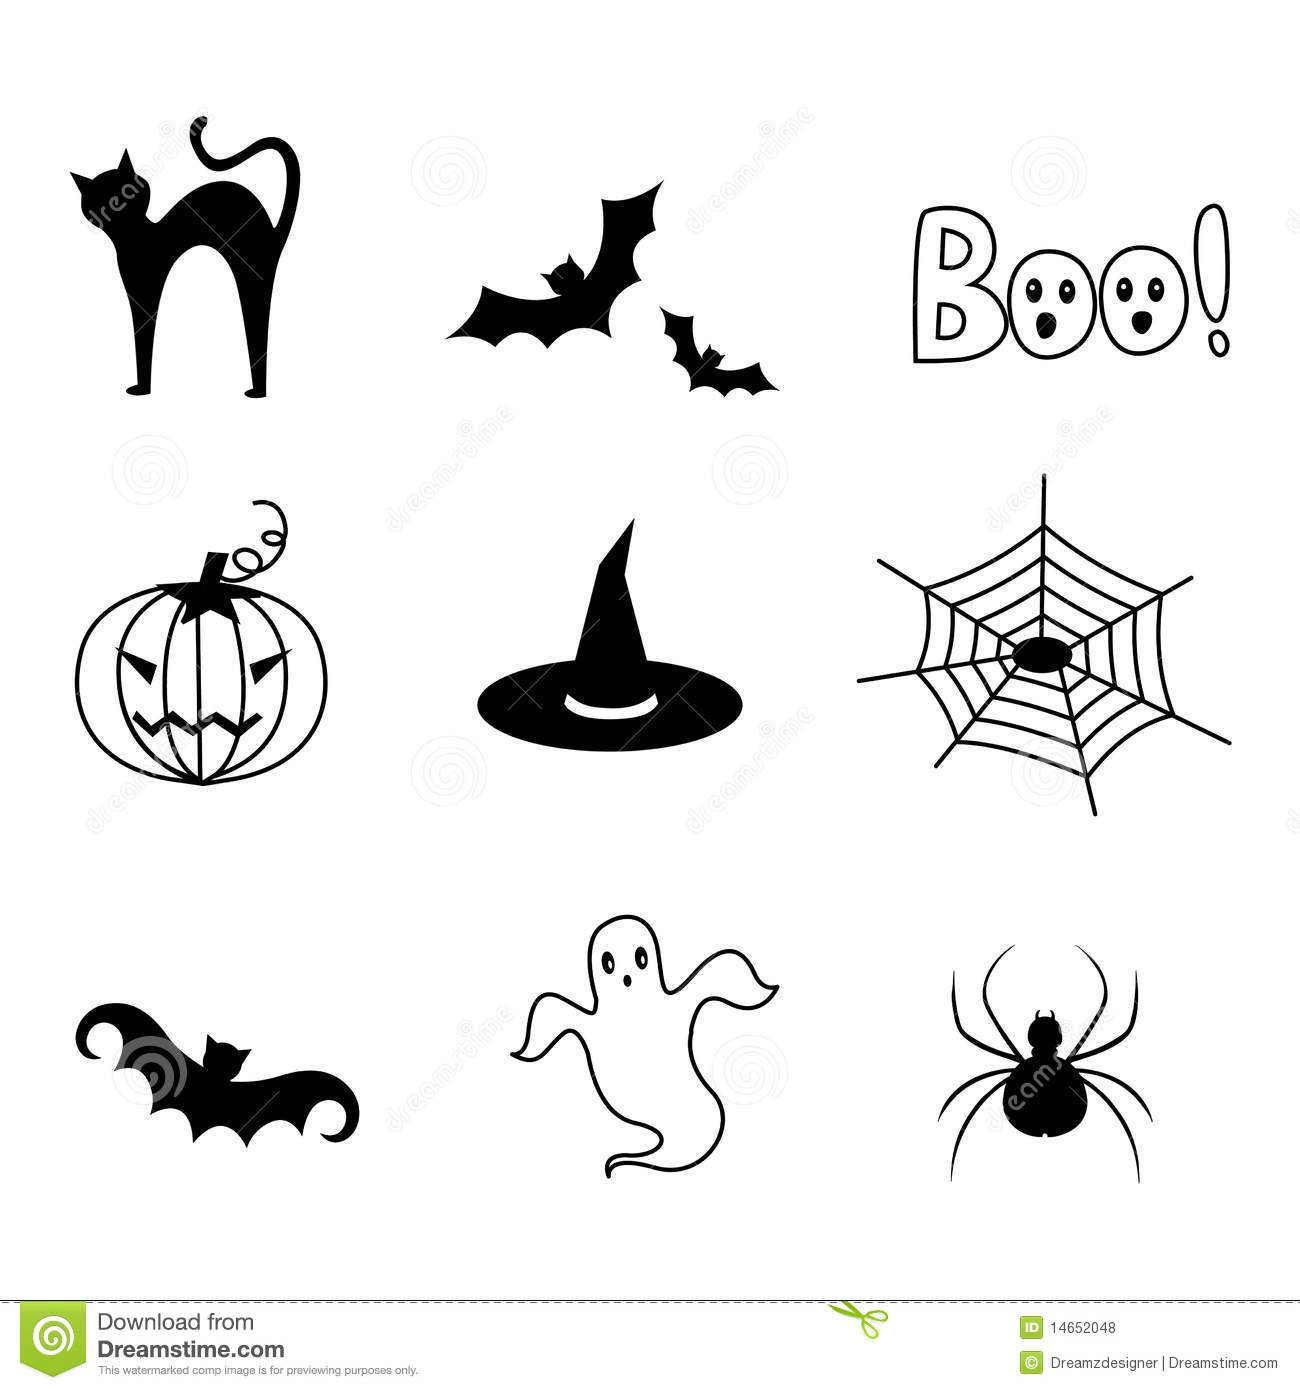 Cute Simple Drawings Tumblr likewise Alien Isolation Building A Xenomorph as well Cool Drawings Of Creatures in addition Royalty Free Stock Photos Halloween Icon Icons Vector Image14652048 furthermore Monster 2 Coloring Page. on scary creature images